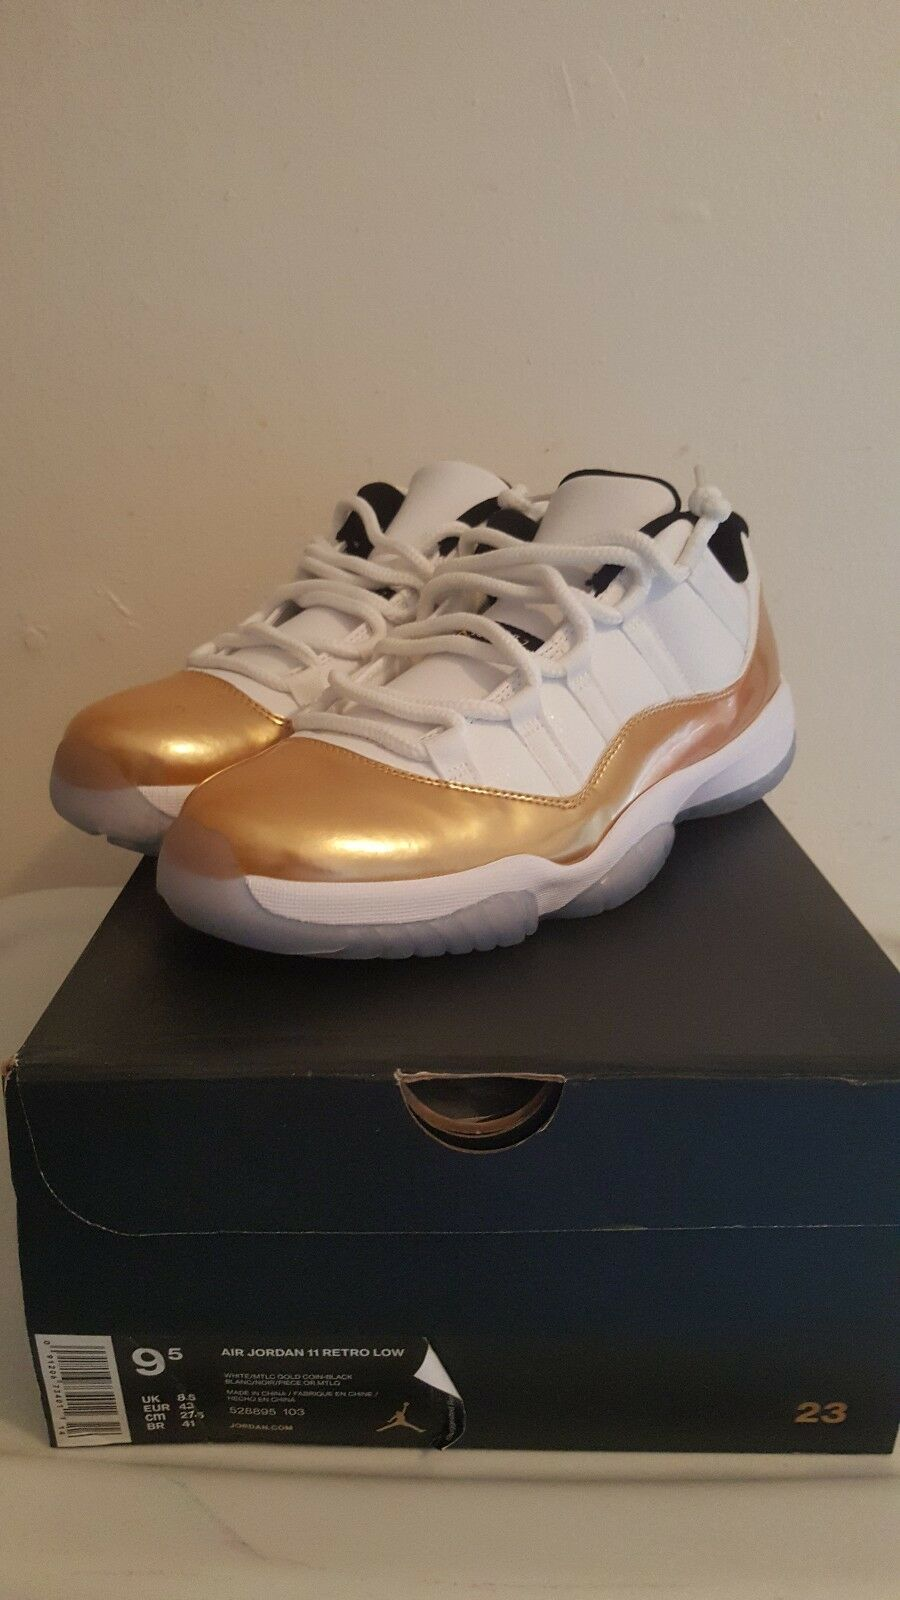 the best attitude dd090 5c08b VNDS VNDS VNDS Mens Nike AirJordan Retro 11 low size 9.5 white gold 04994f